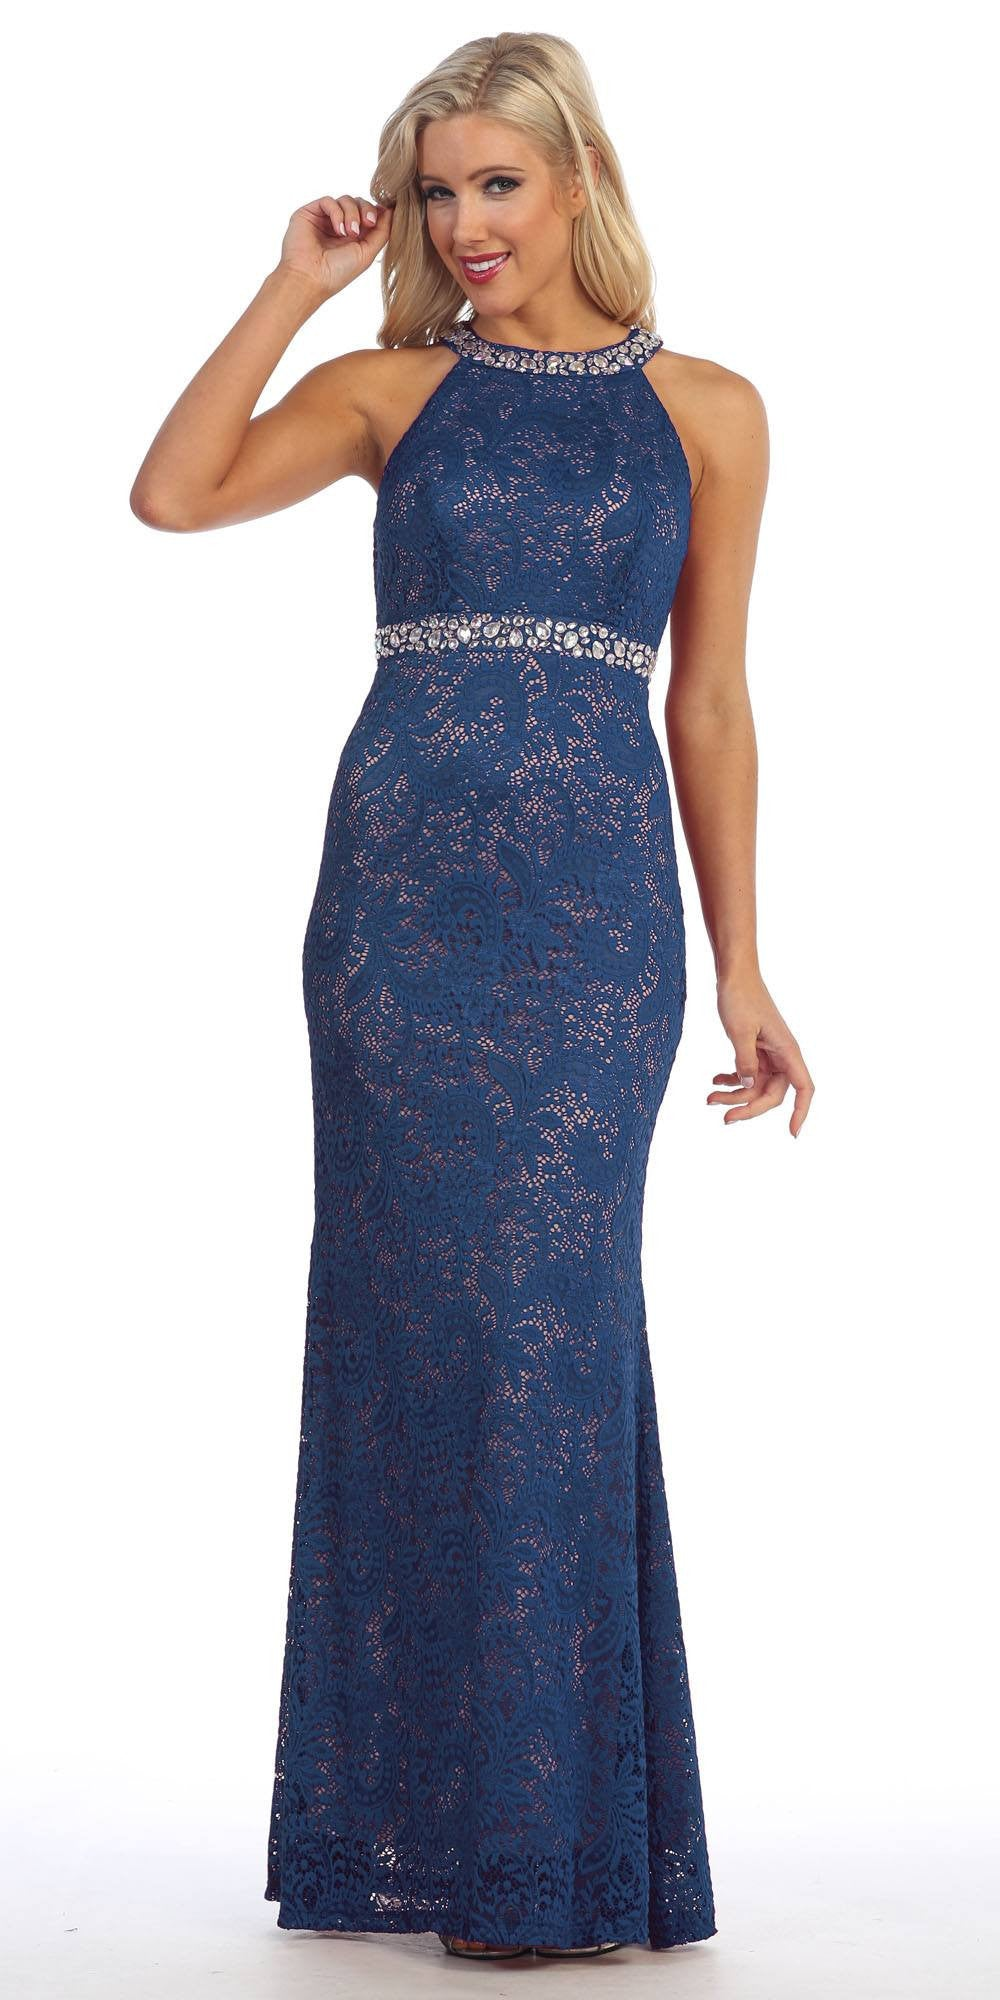 Halter Jeweled Neck and Waist Fit and Flare Lace Prom Gown Wine/Nude ...